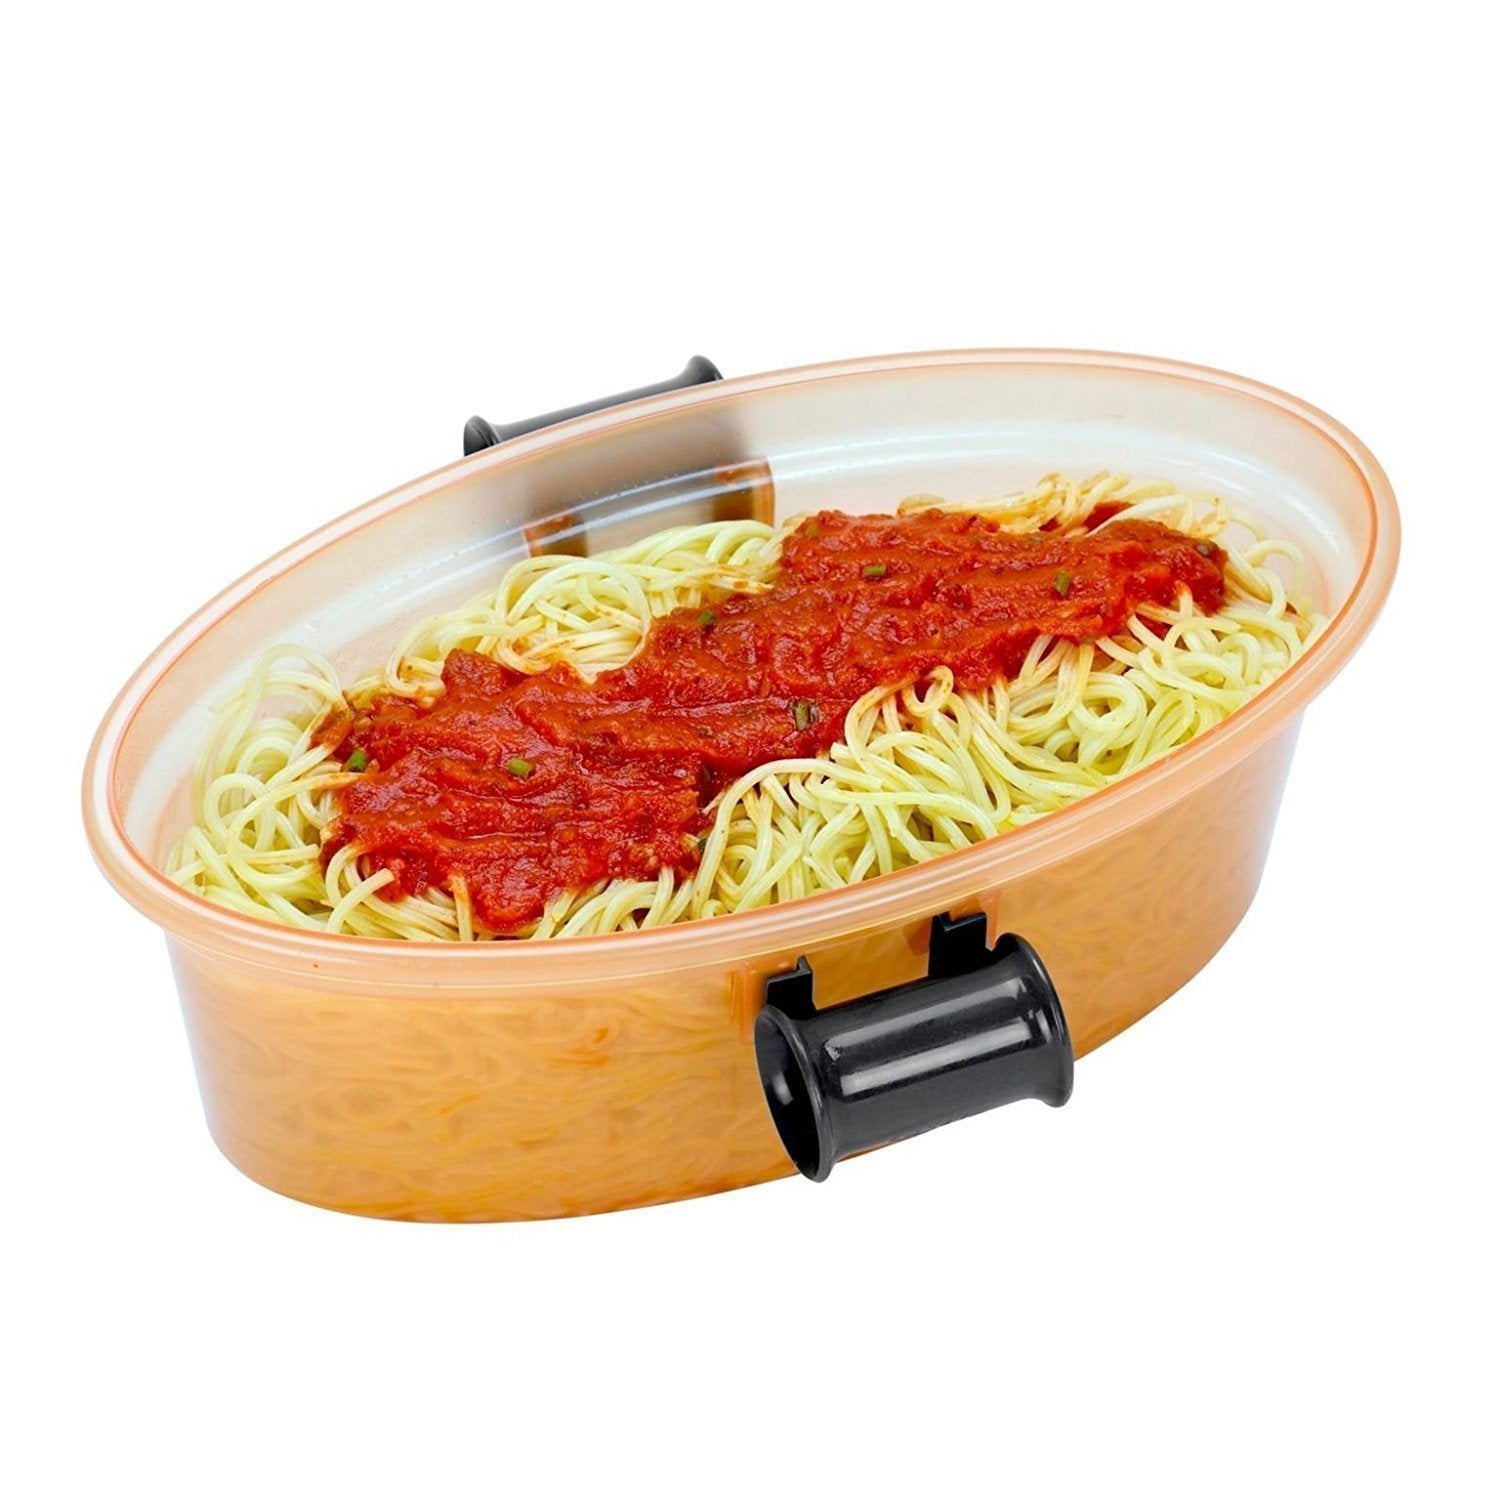 5-in-1 Nonstick Cooker